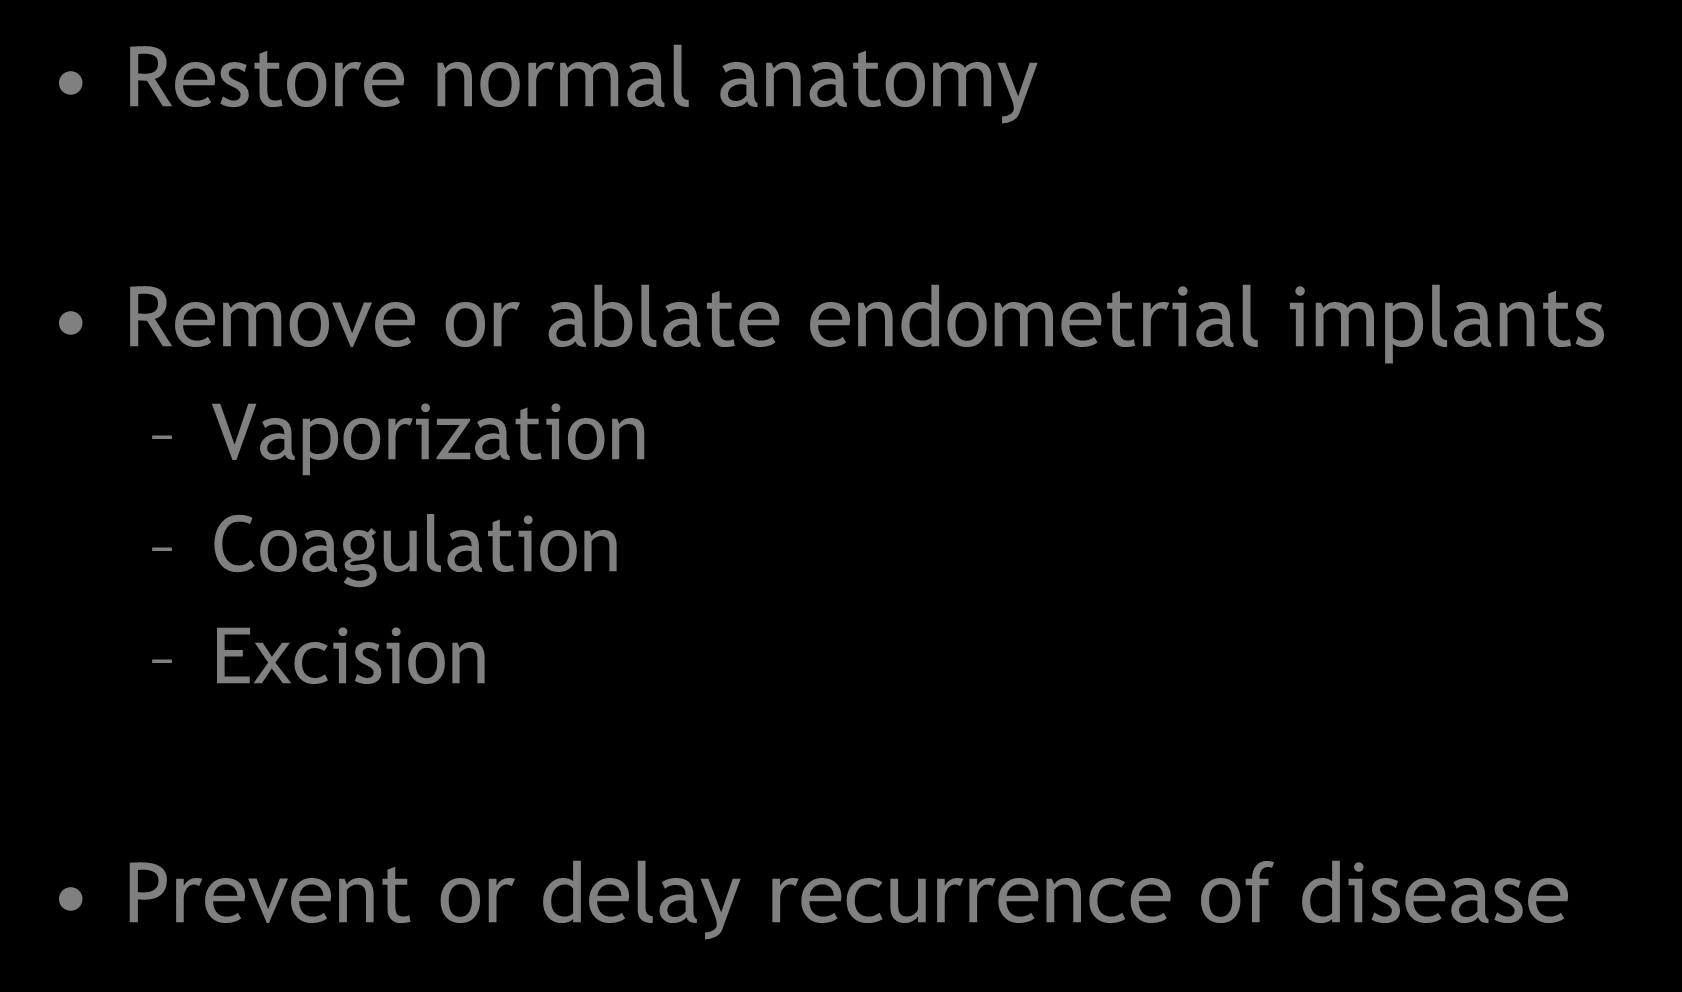 Treatment Objectives Restore normal anatomy Remove or ablate endometrial